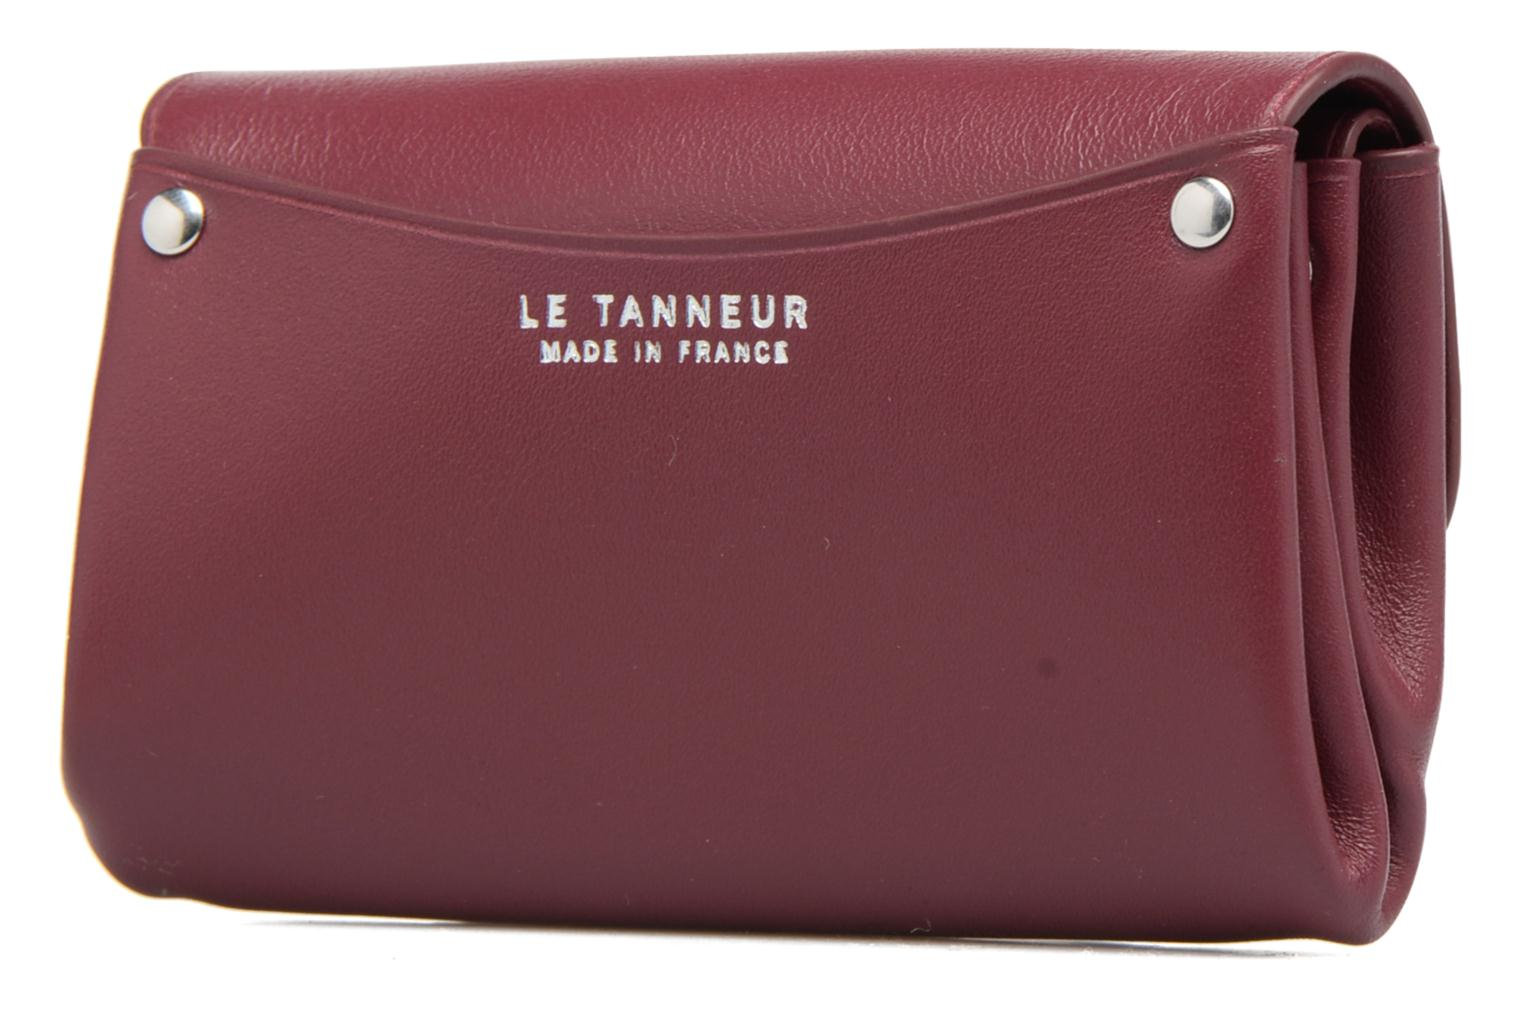 SANS COUTURE Porte-monnaie Made in France Prune